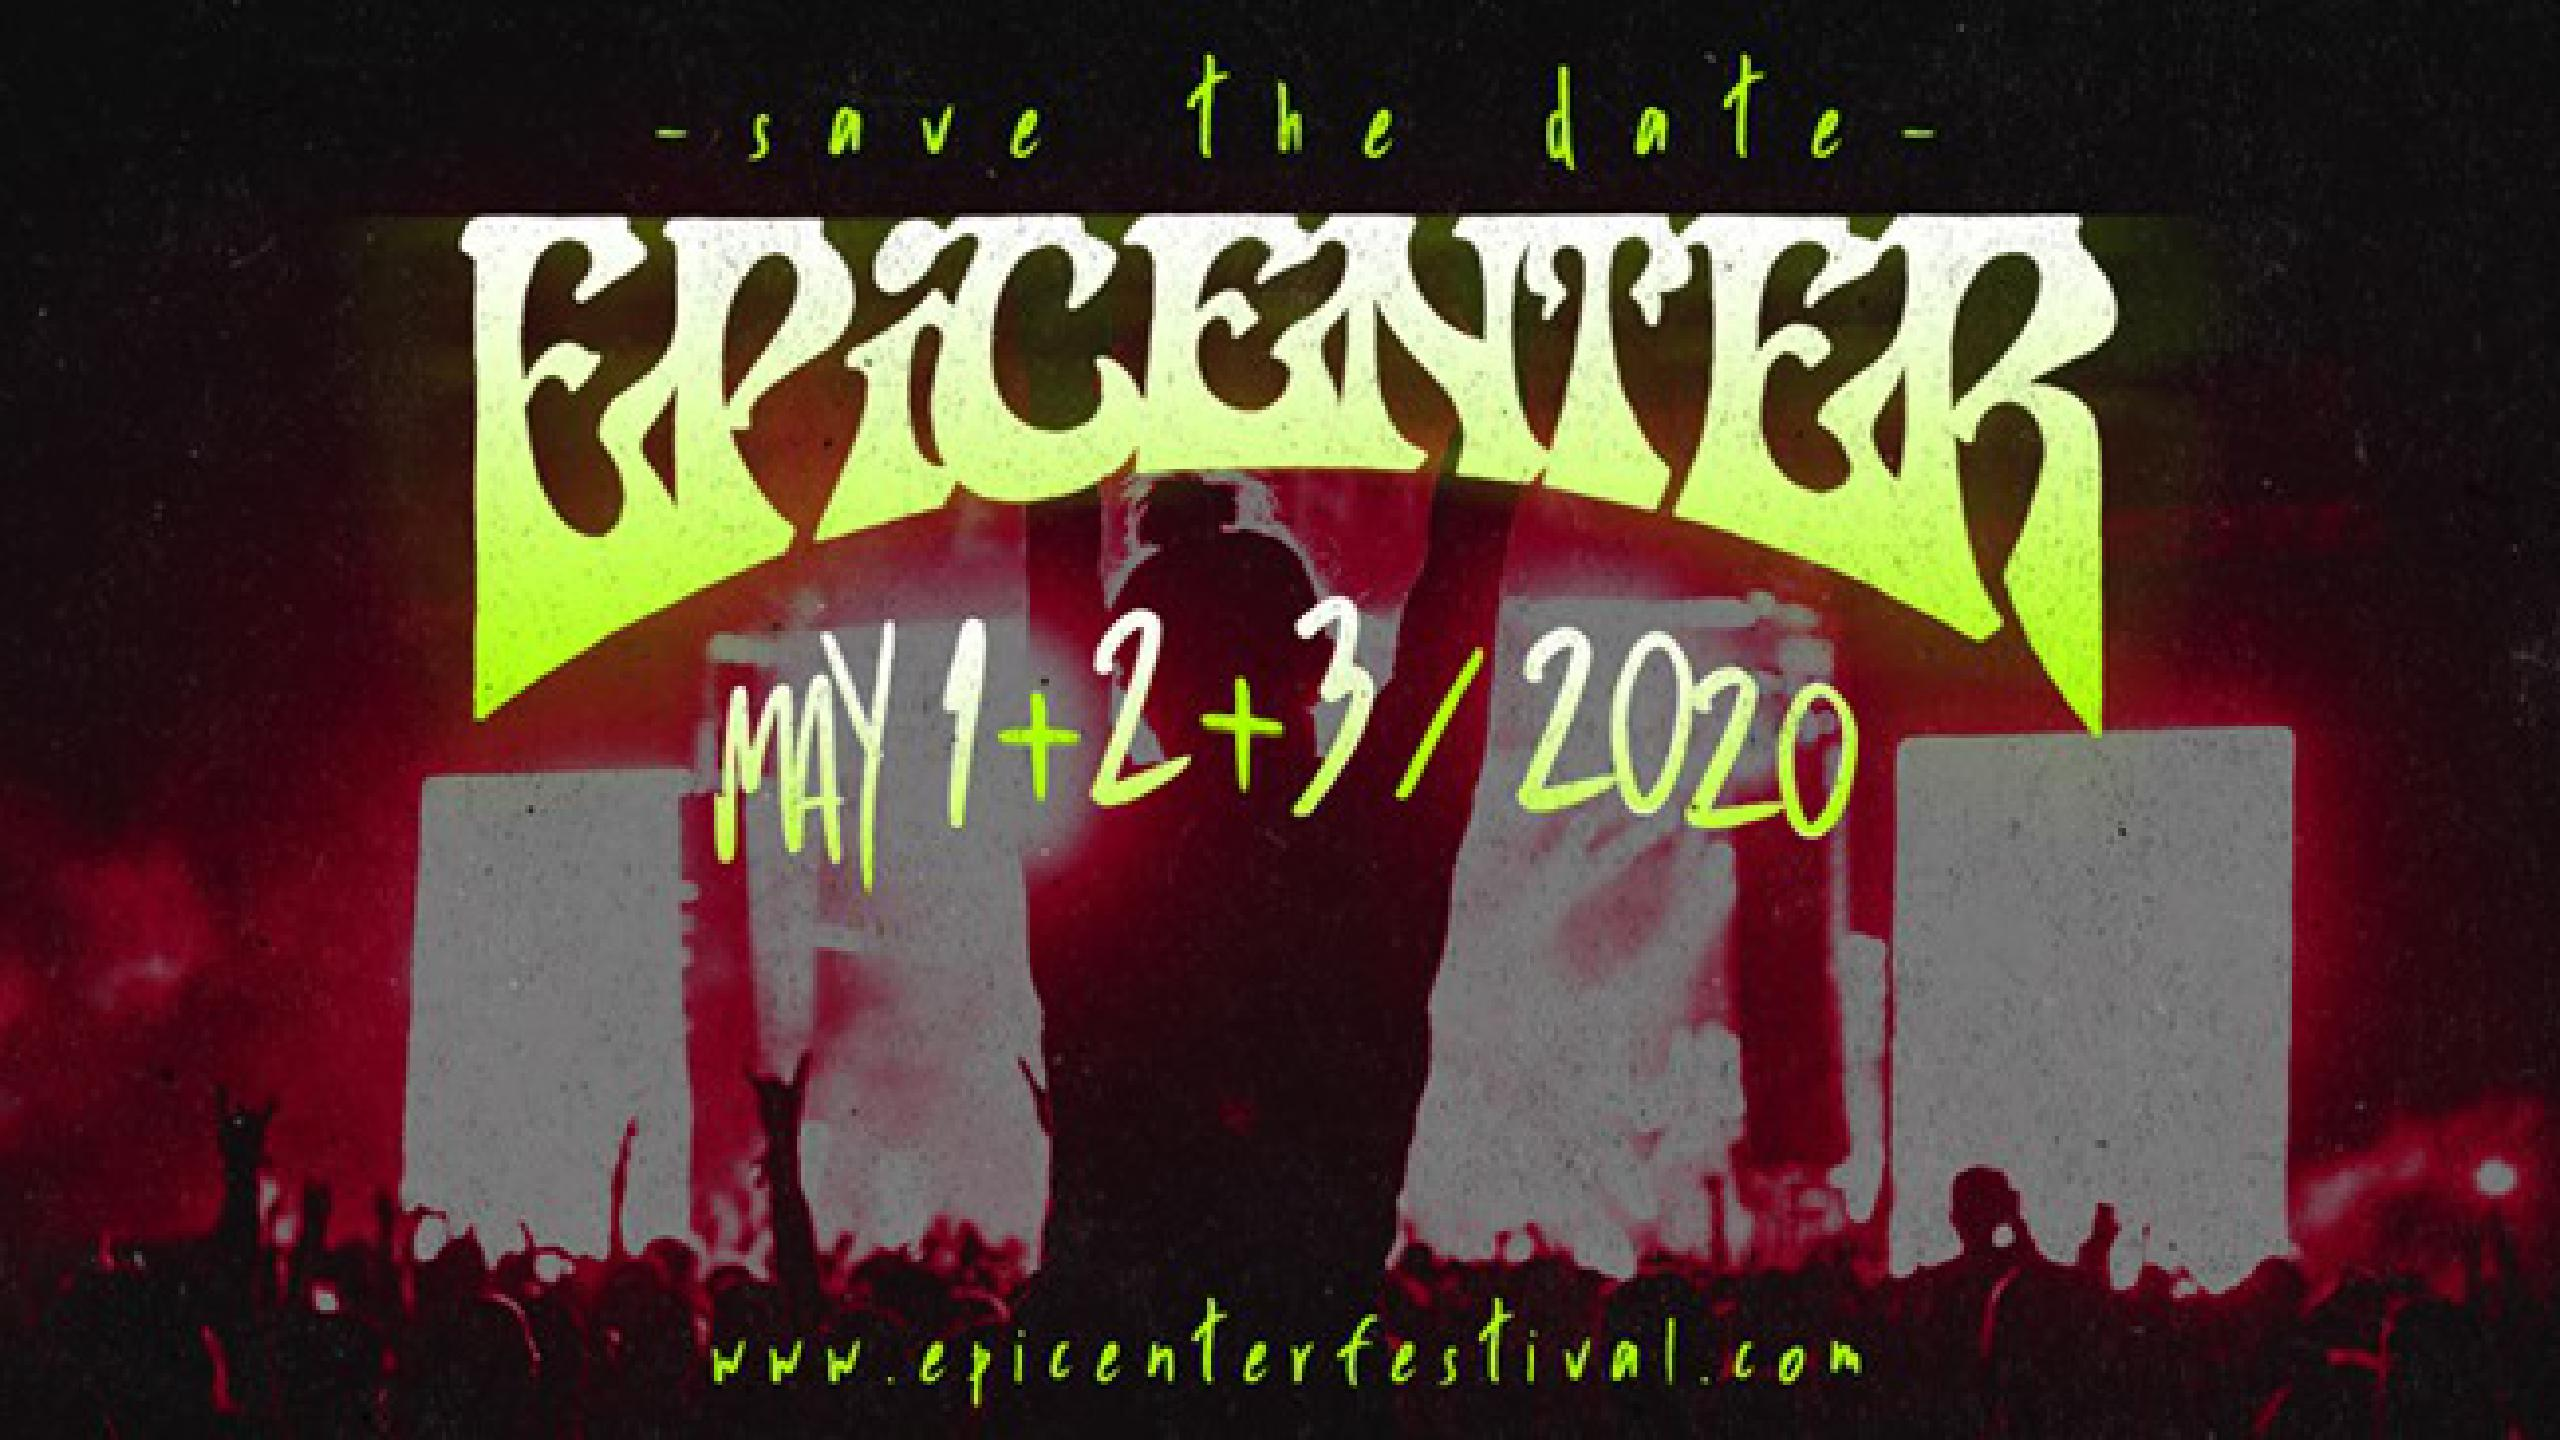 Festival 2020.Epicenter Festival 2020 Tickets Lineup Bands For